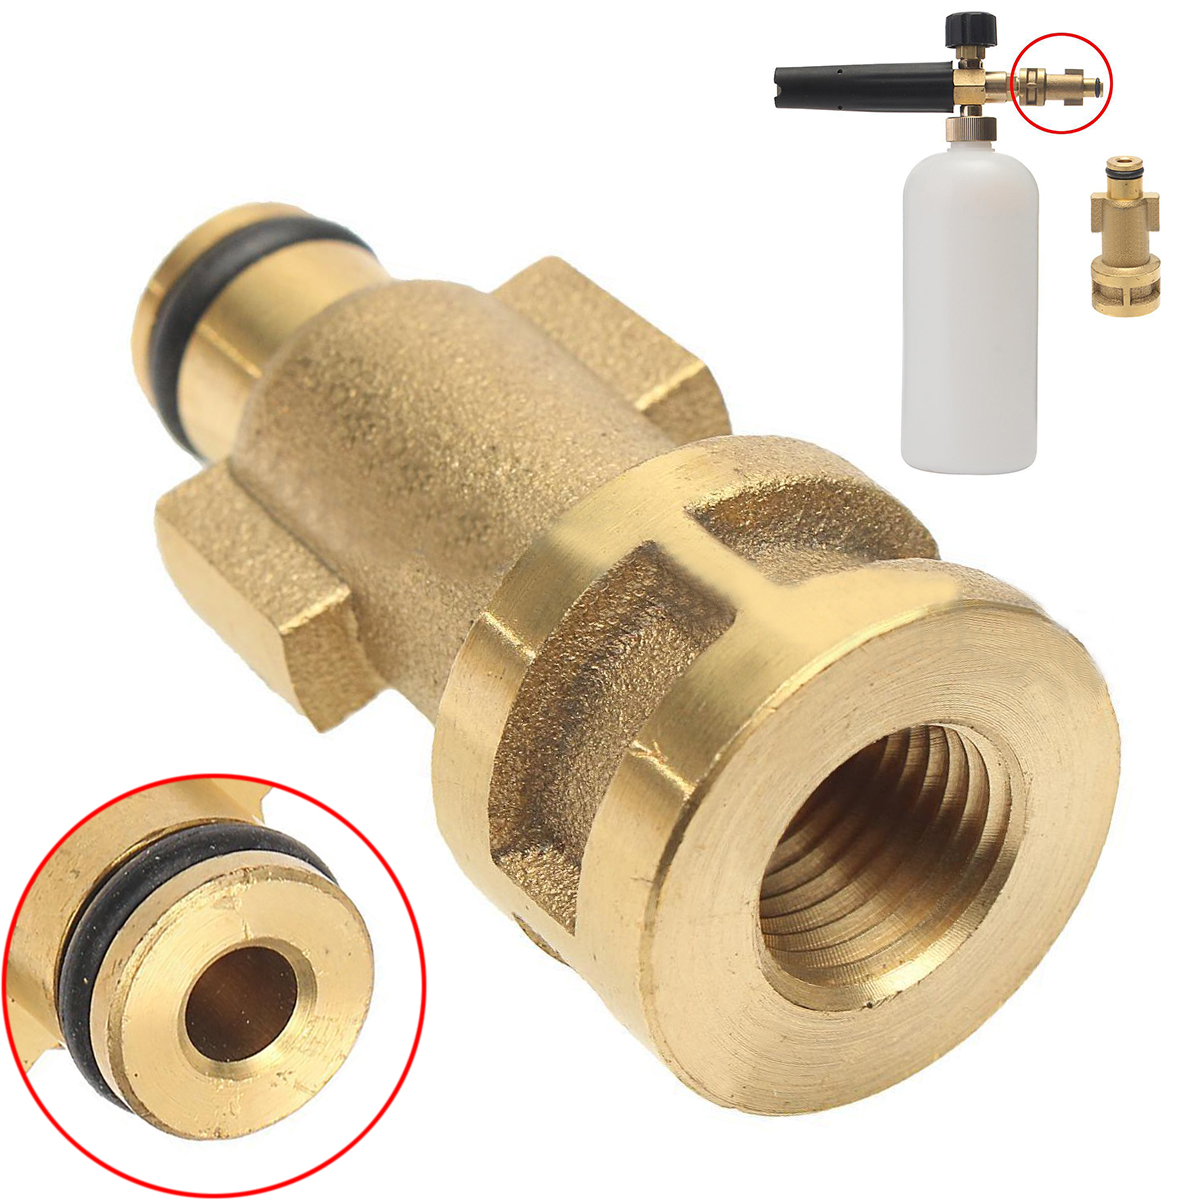 1pc Brass Washer Adapter 3000PSI Mayitr 1/4 Female Snow Foam Lance Adaptor Quick Connector For Pressure Water Tools 51*24*12mm